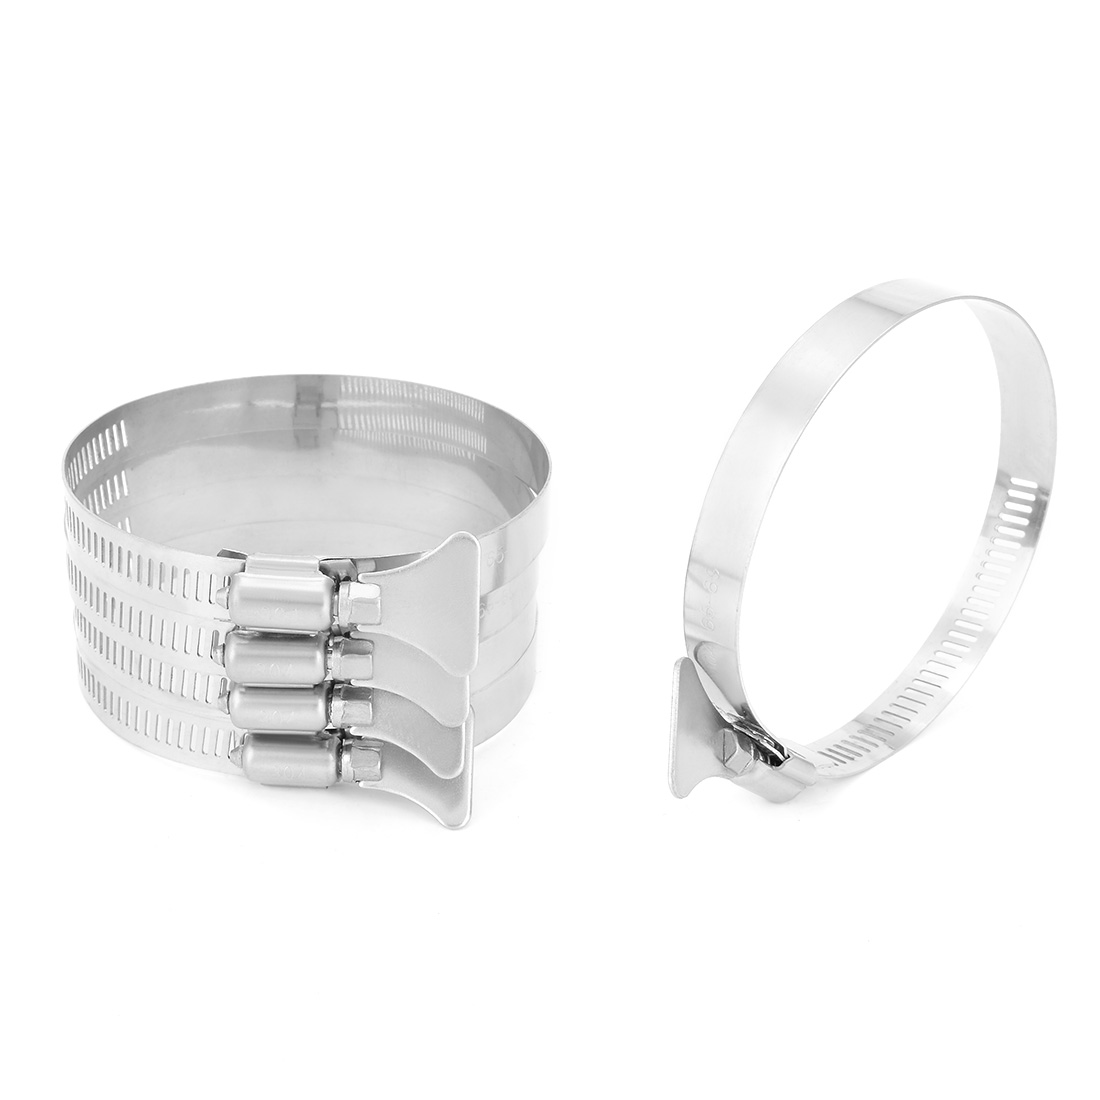 65mm-89mm Clamping Range 304 Stainless Steel Butterfly Hose Clamp 5pcs